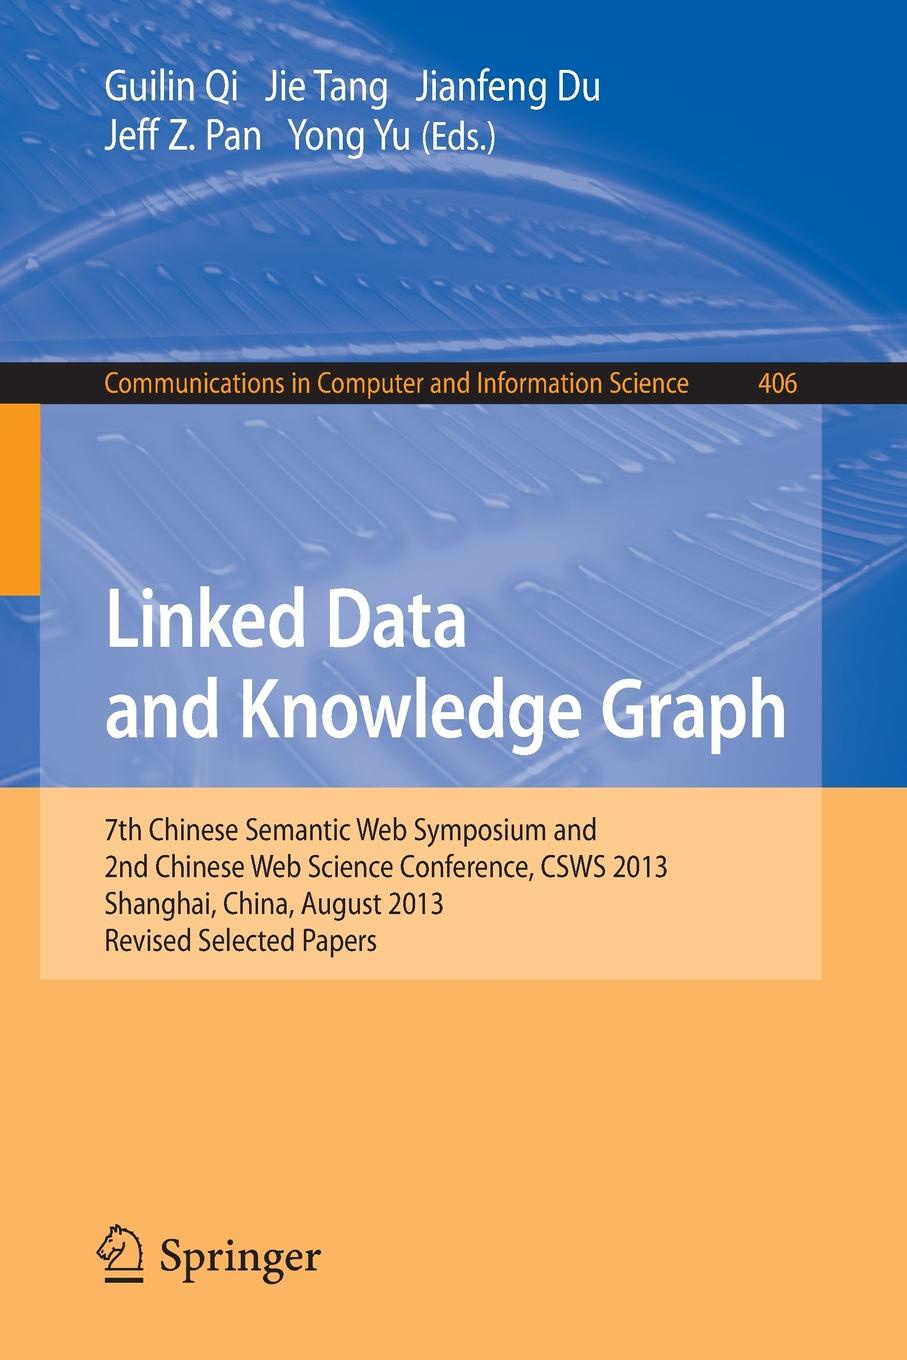 Linked Data and Knowledge Graph Seventh Chinese Semantic Web Symposium and the Second Chinese Web Science Conference CSWS 2013 Shanghai China August 12-16 2013 Revised Selected Papers